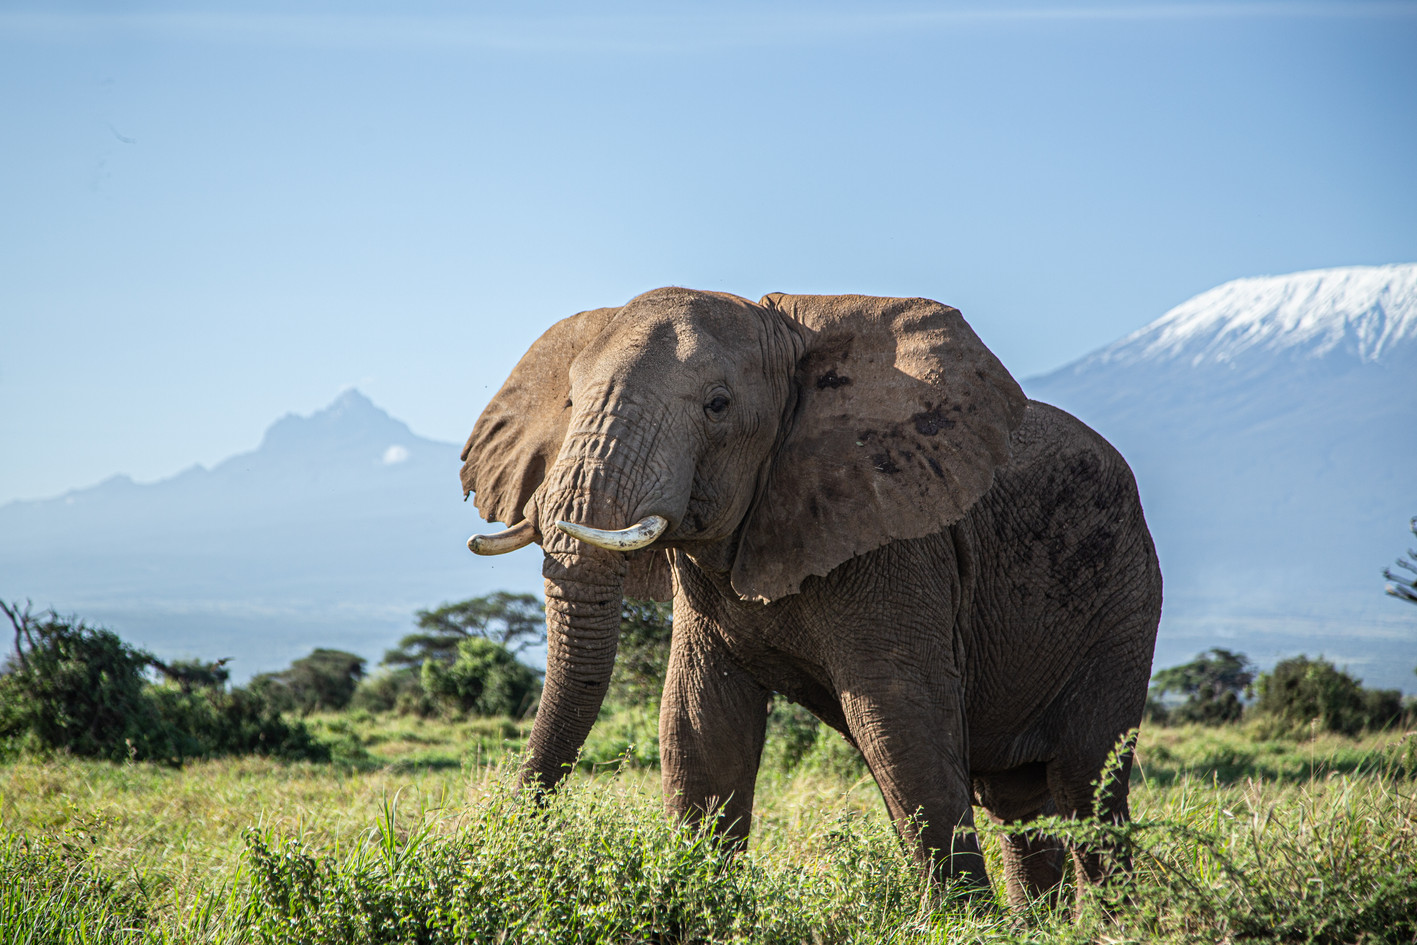 An elephant traverses Tsavo National Park, walking in the shadow of Mount Kilimanjaro